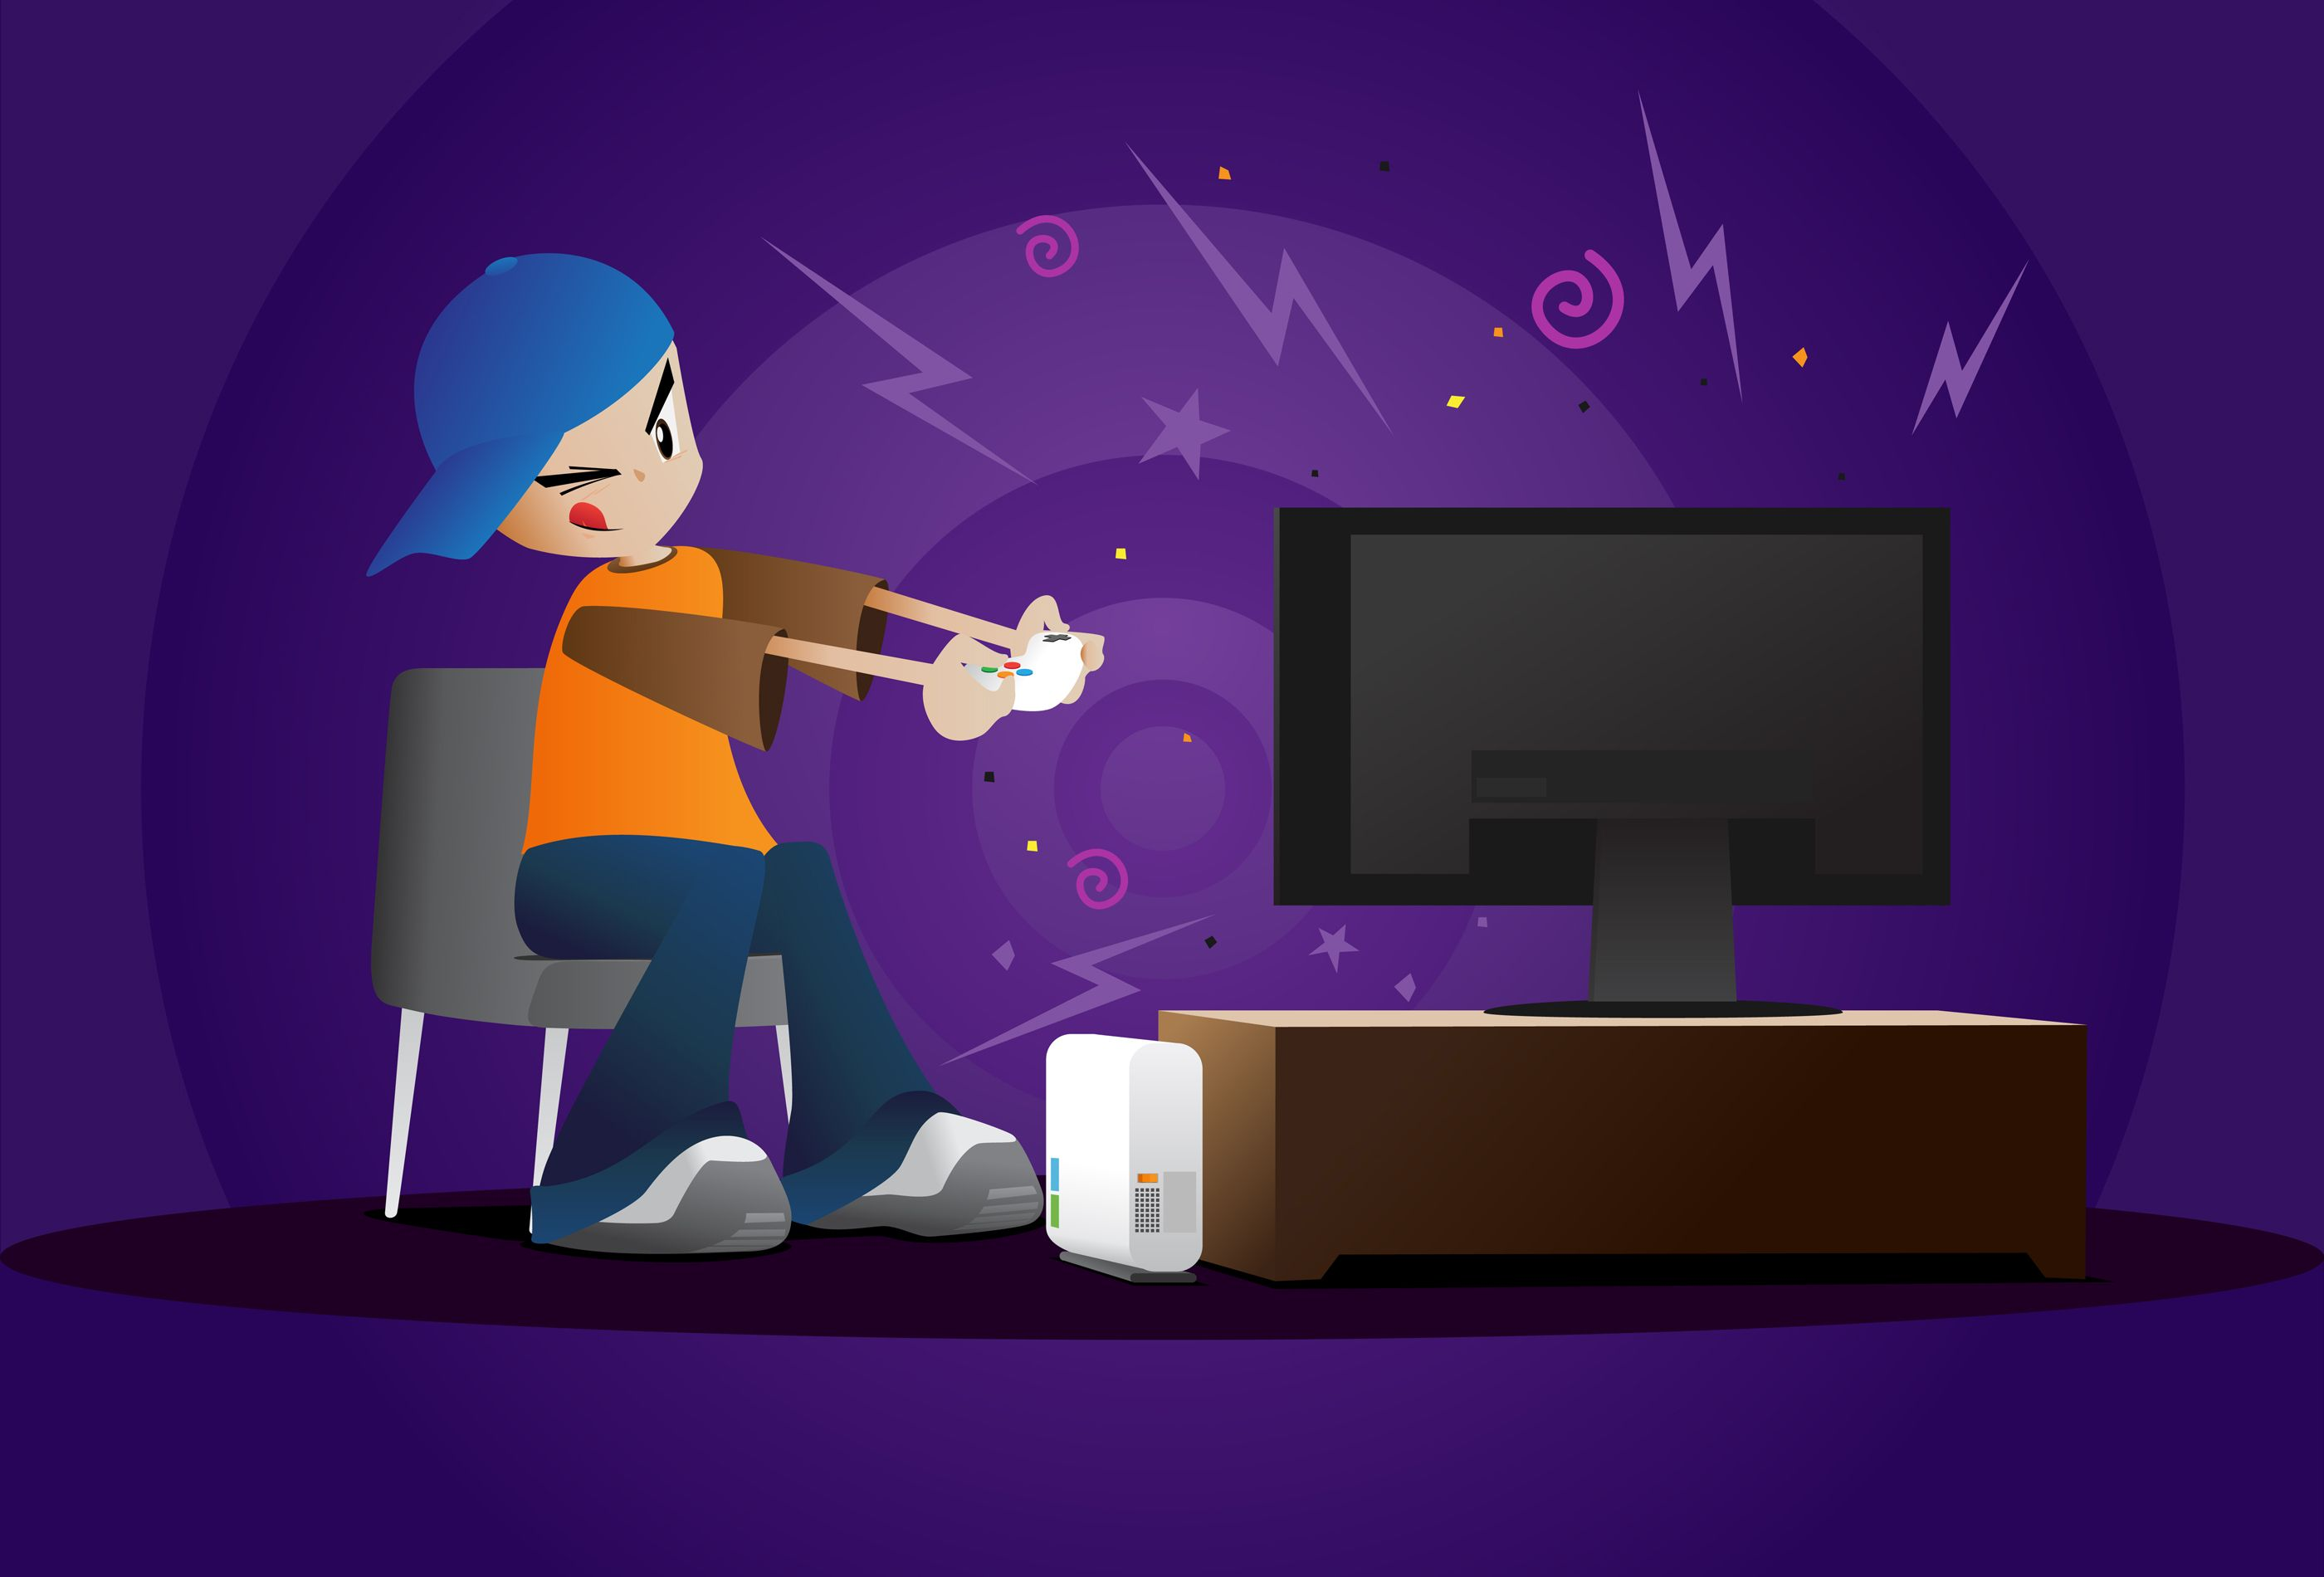 Boy Playing Video Games - Vector illustration of a young boy focused ... http